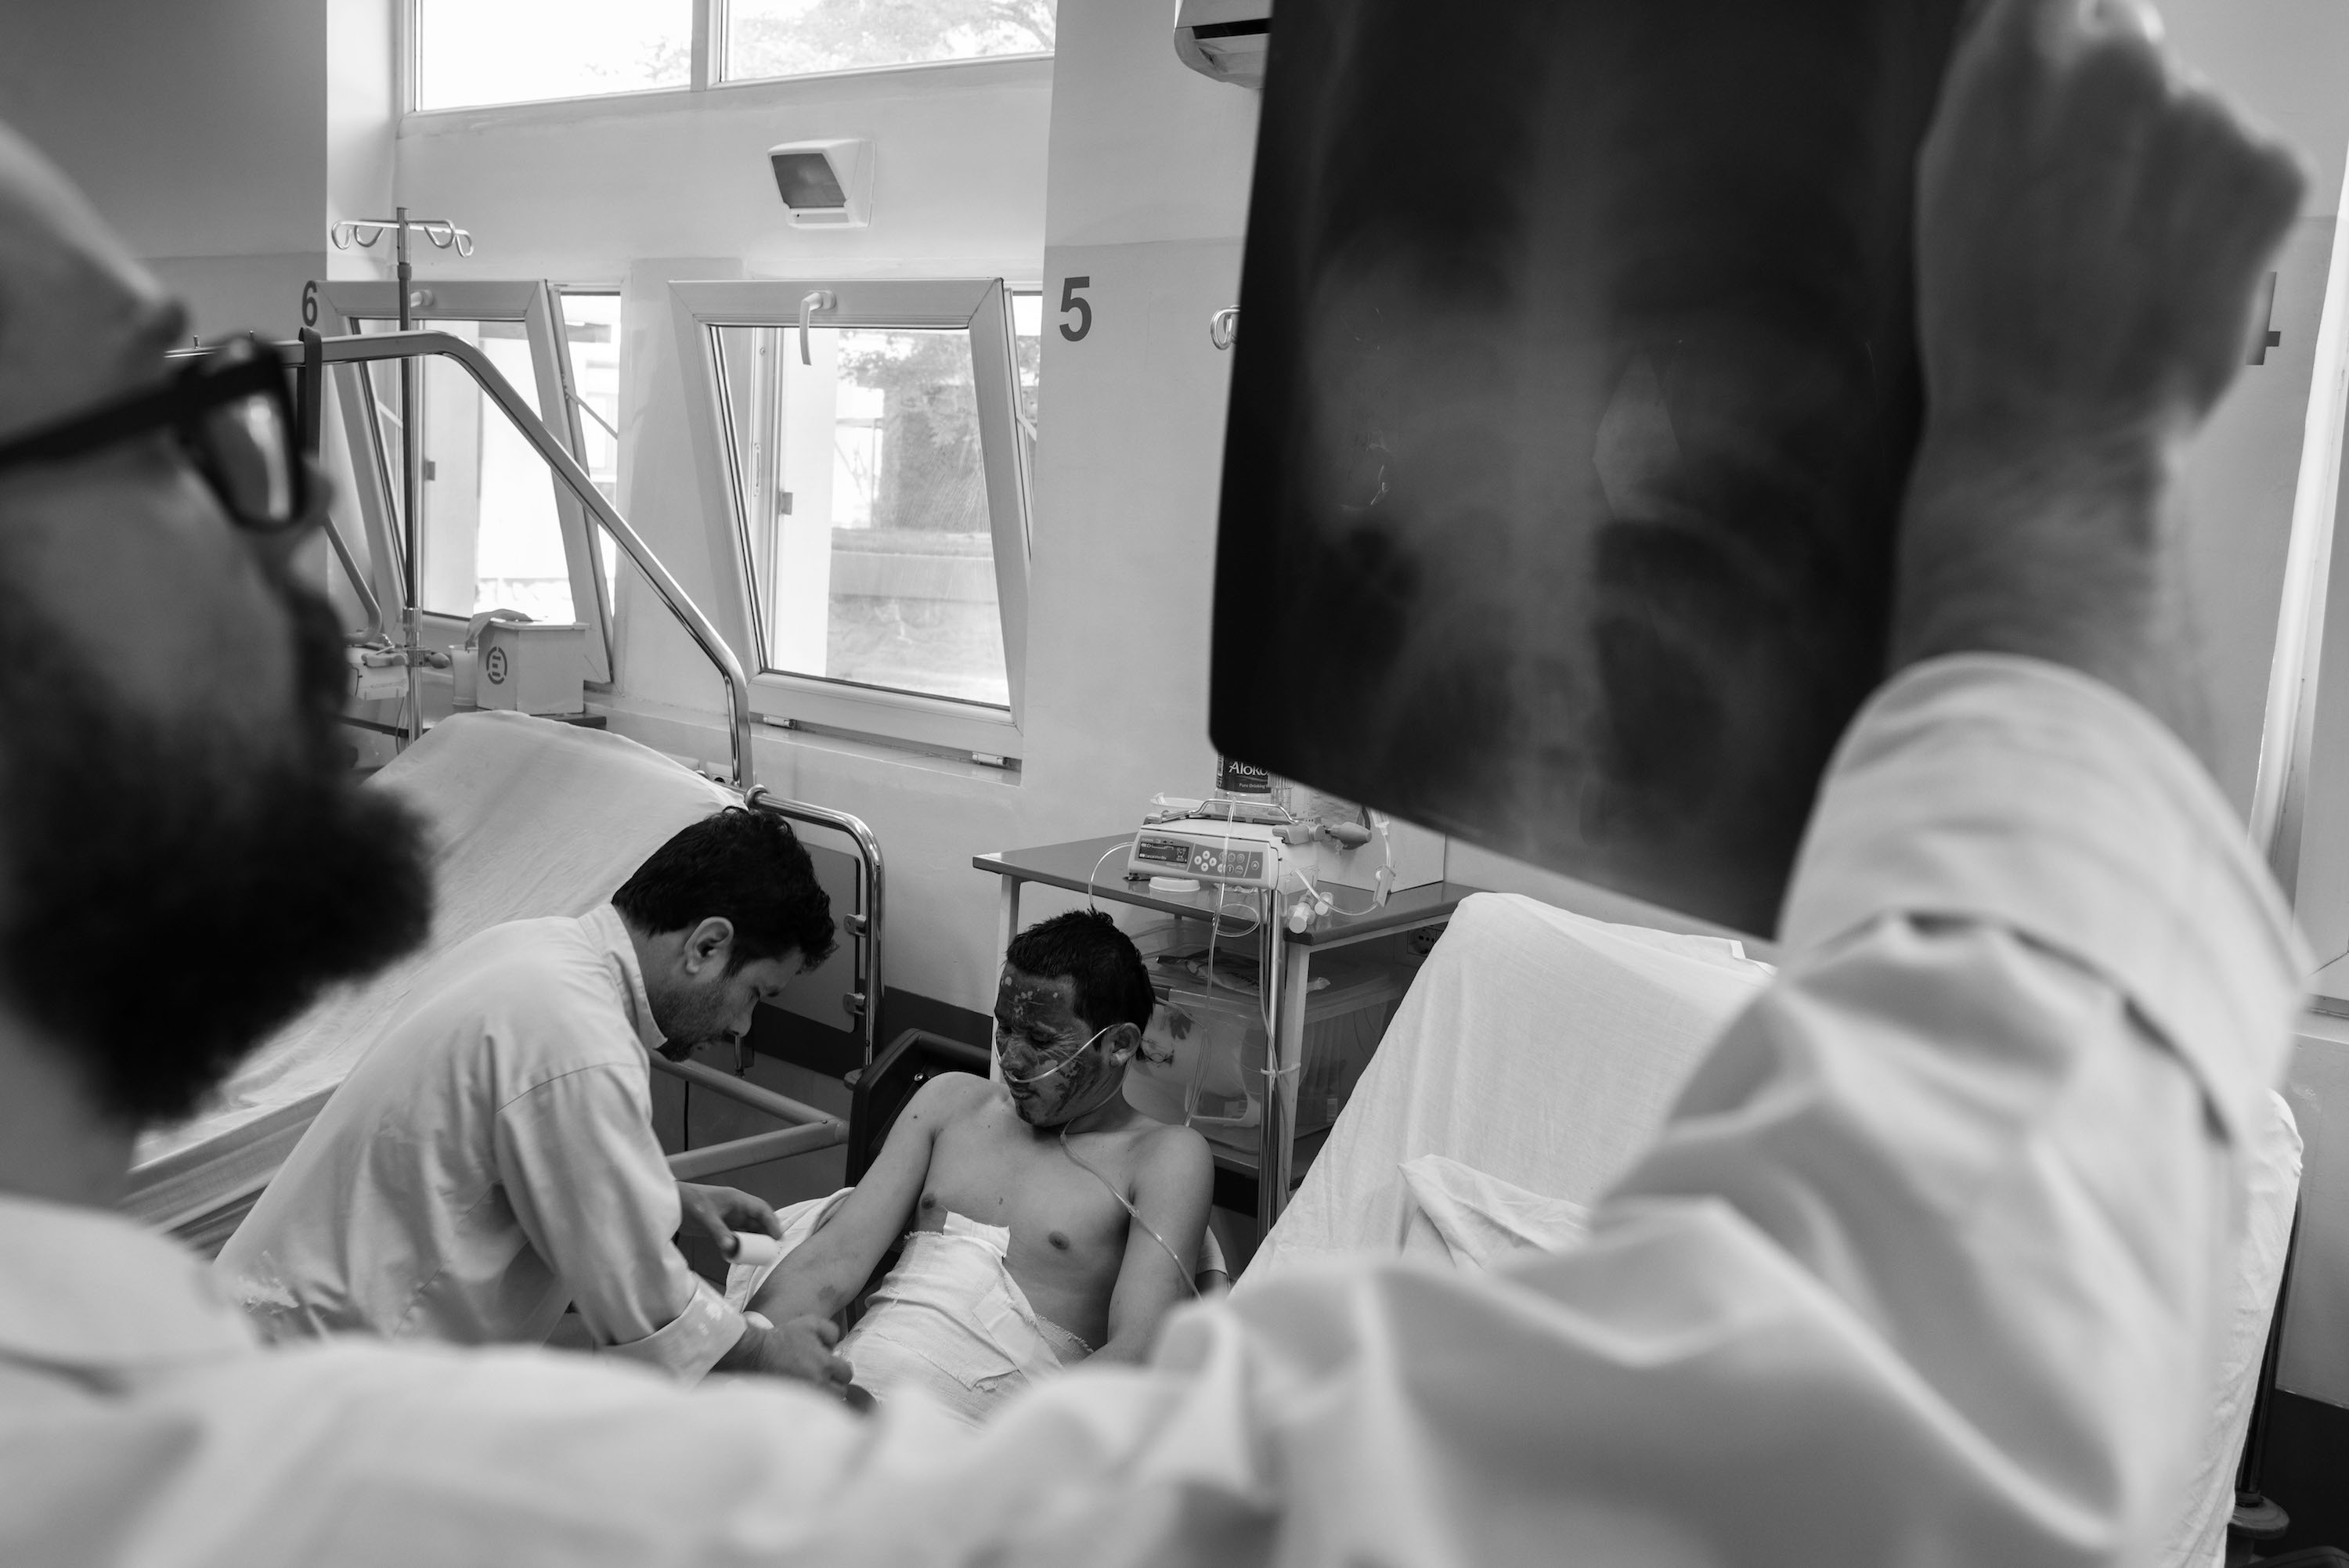 A doctor holds up x-rays in foreground, while patient with burned face is attended to on hospital bed